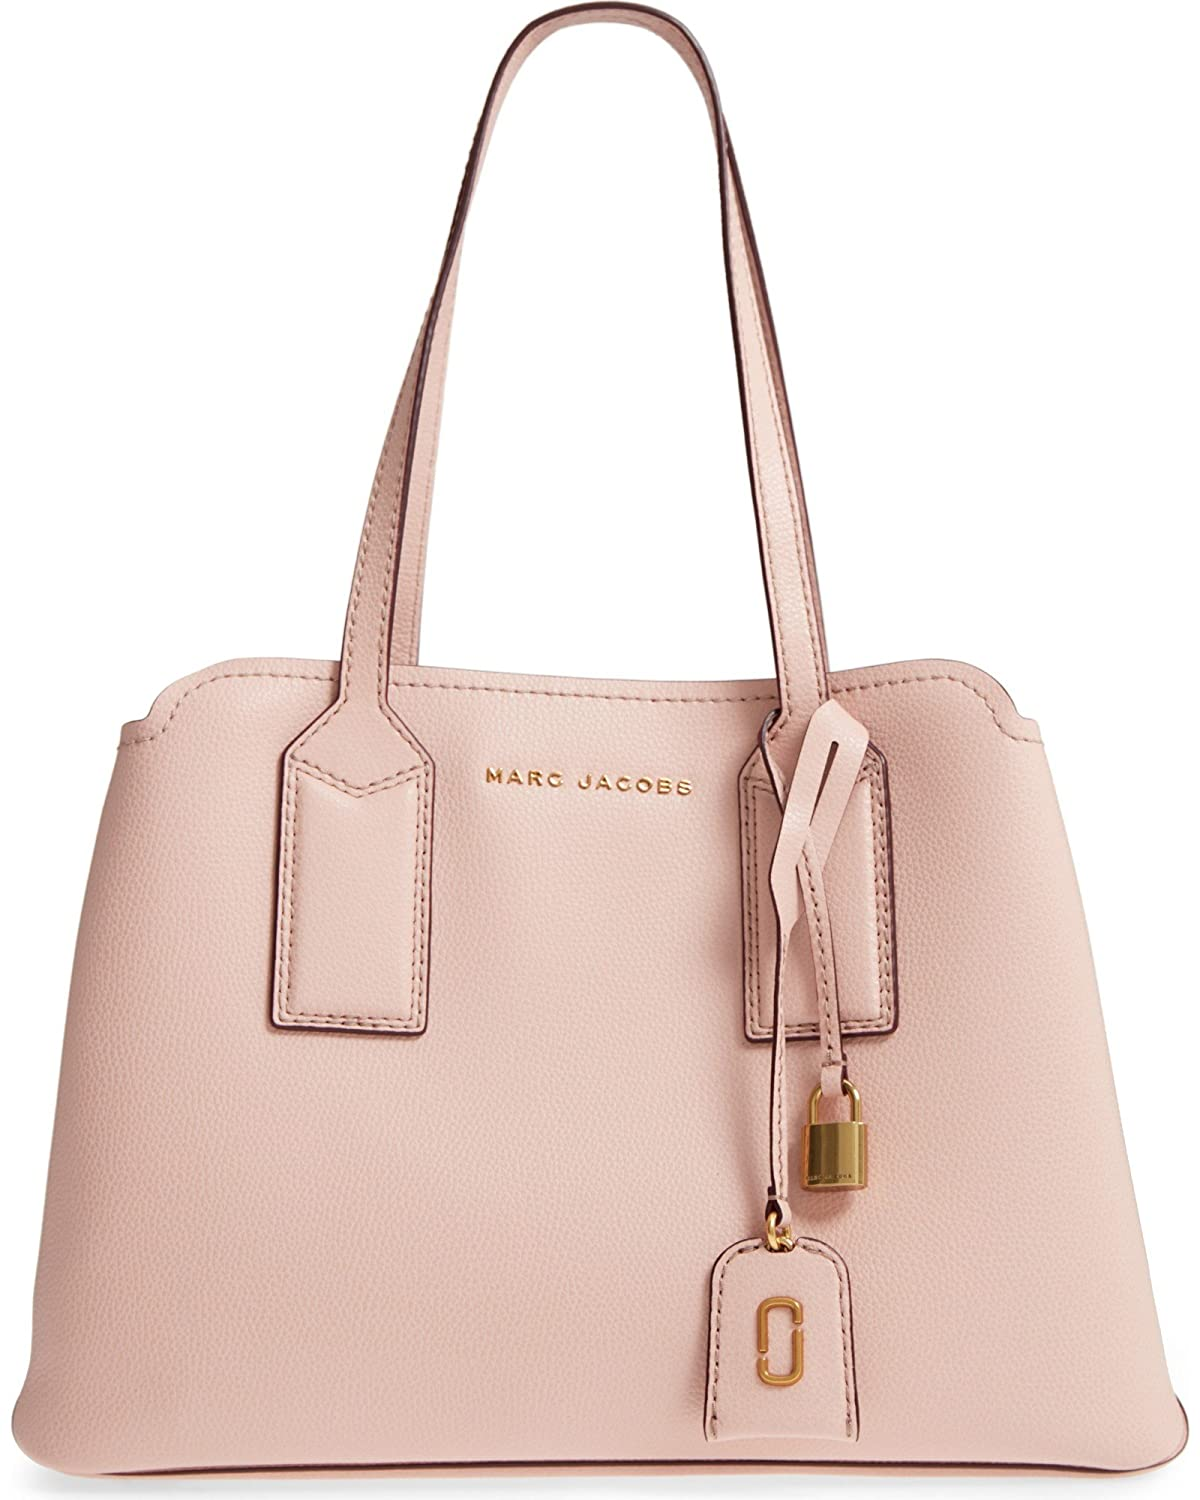 a6fe724a94b Amazon.com: Marc Jacobs The Editor Large Leather Tote Bag, Rose: Shoes